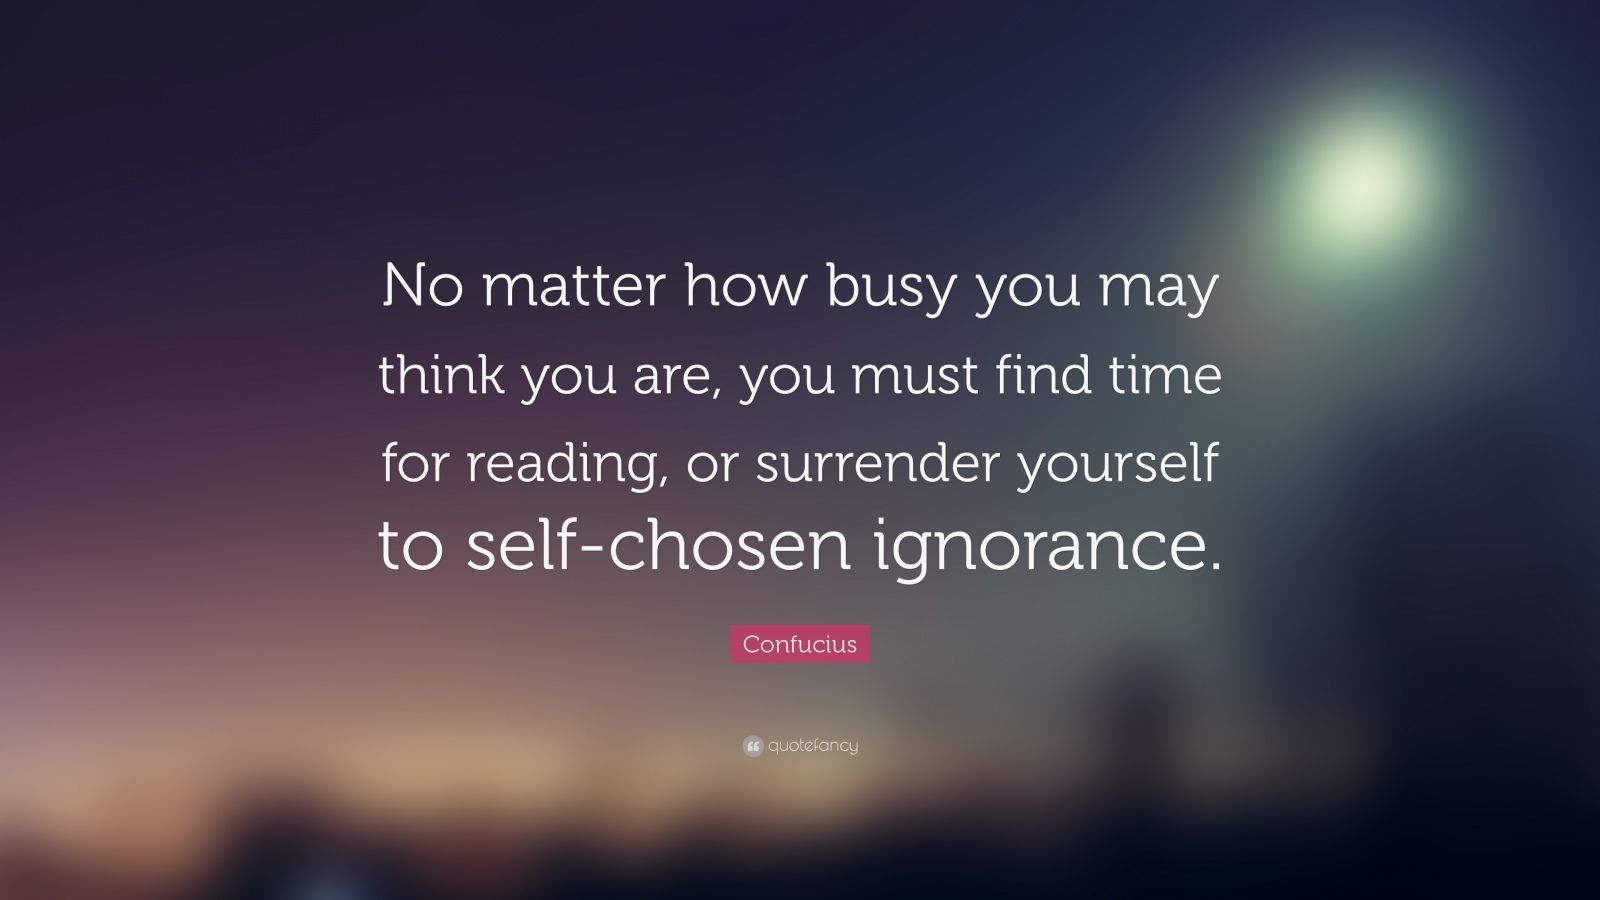 confucius quote   u201cno matter how busy you may think you are